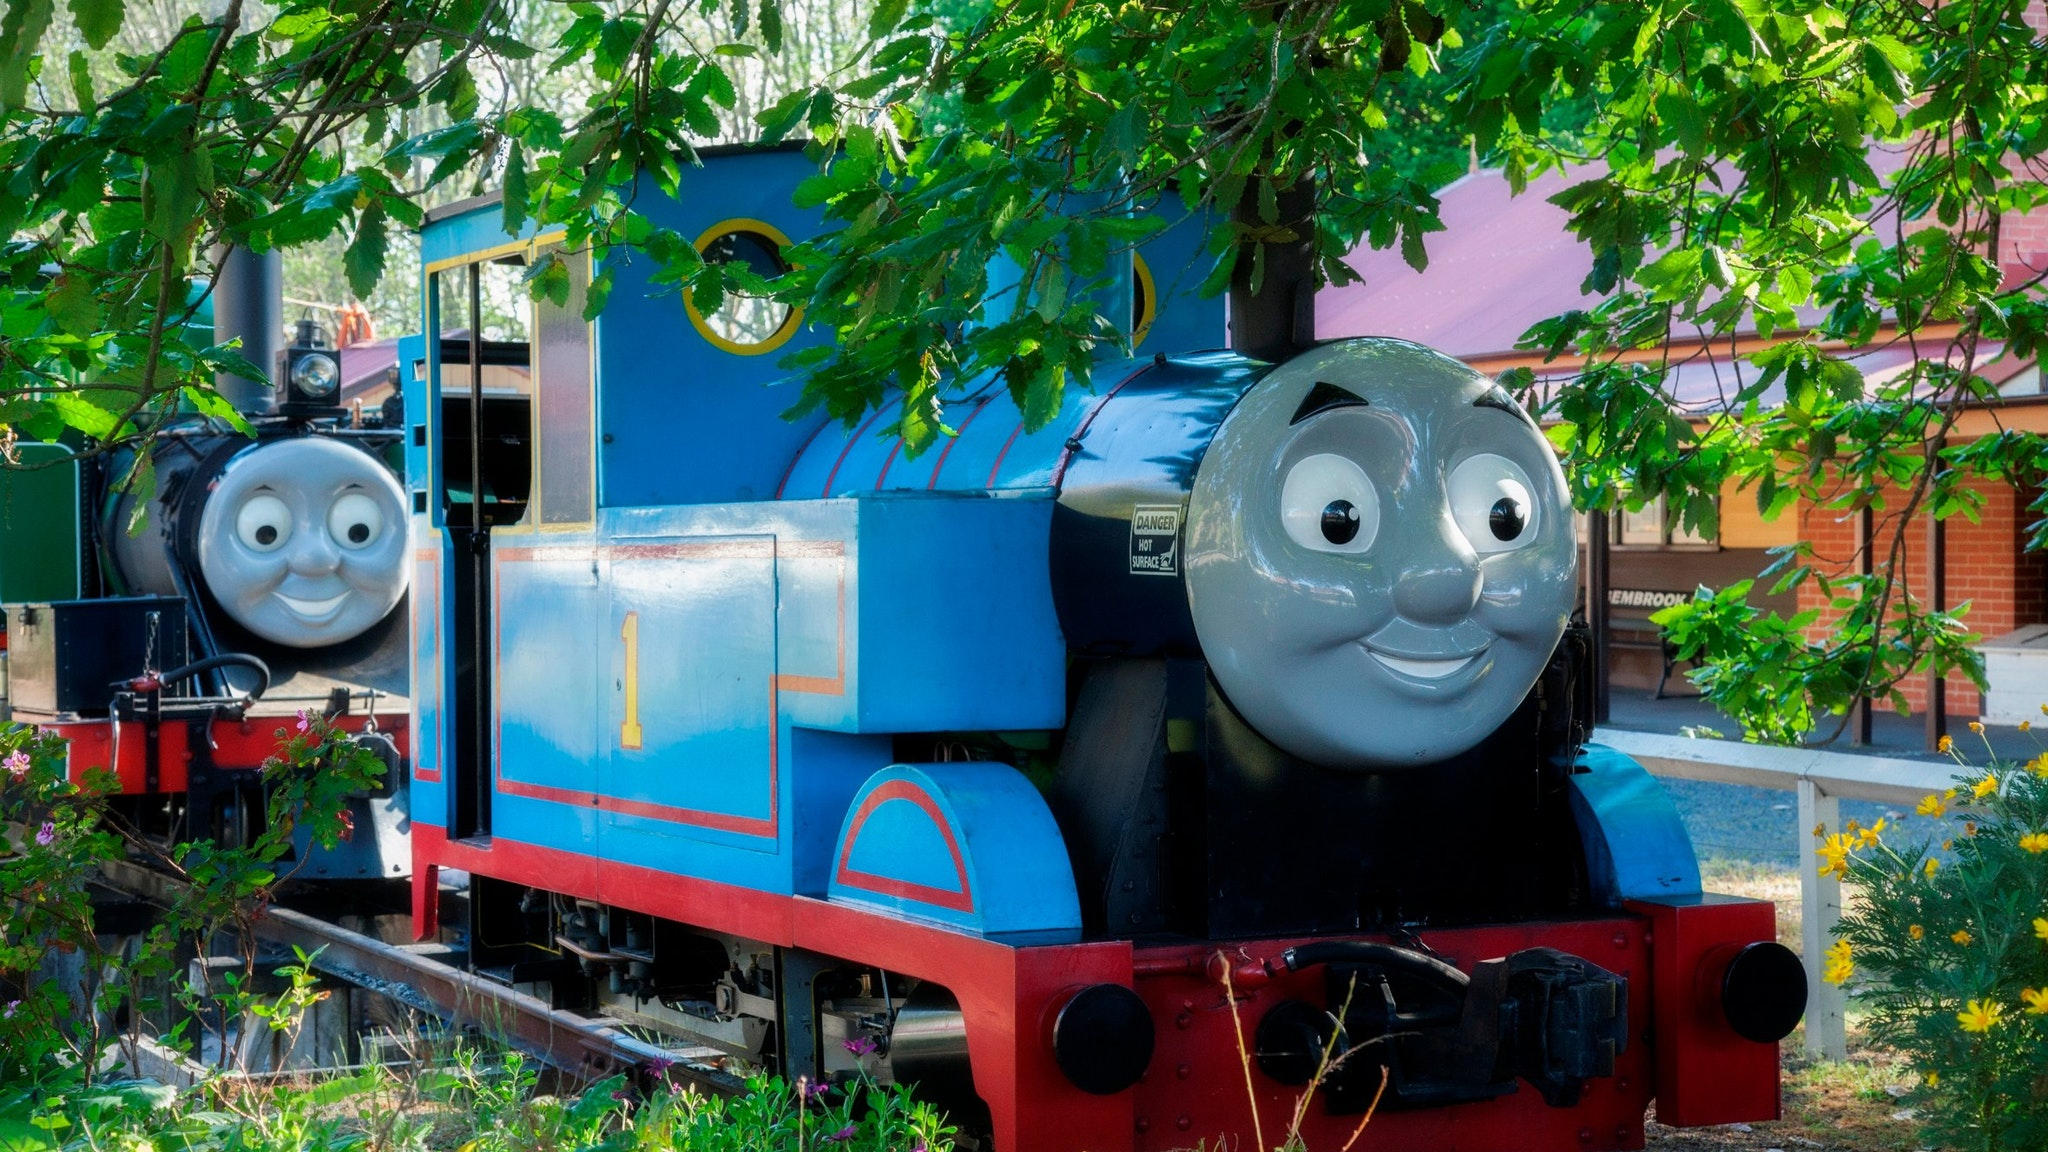 Thomas and Percy at Gembrook station